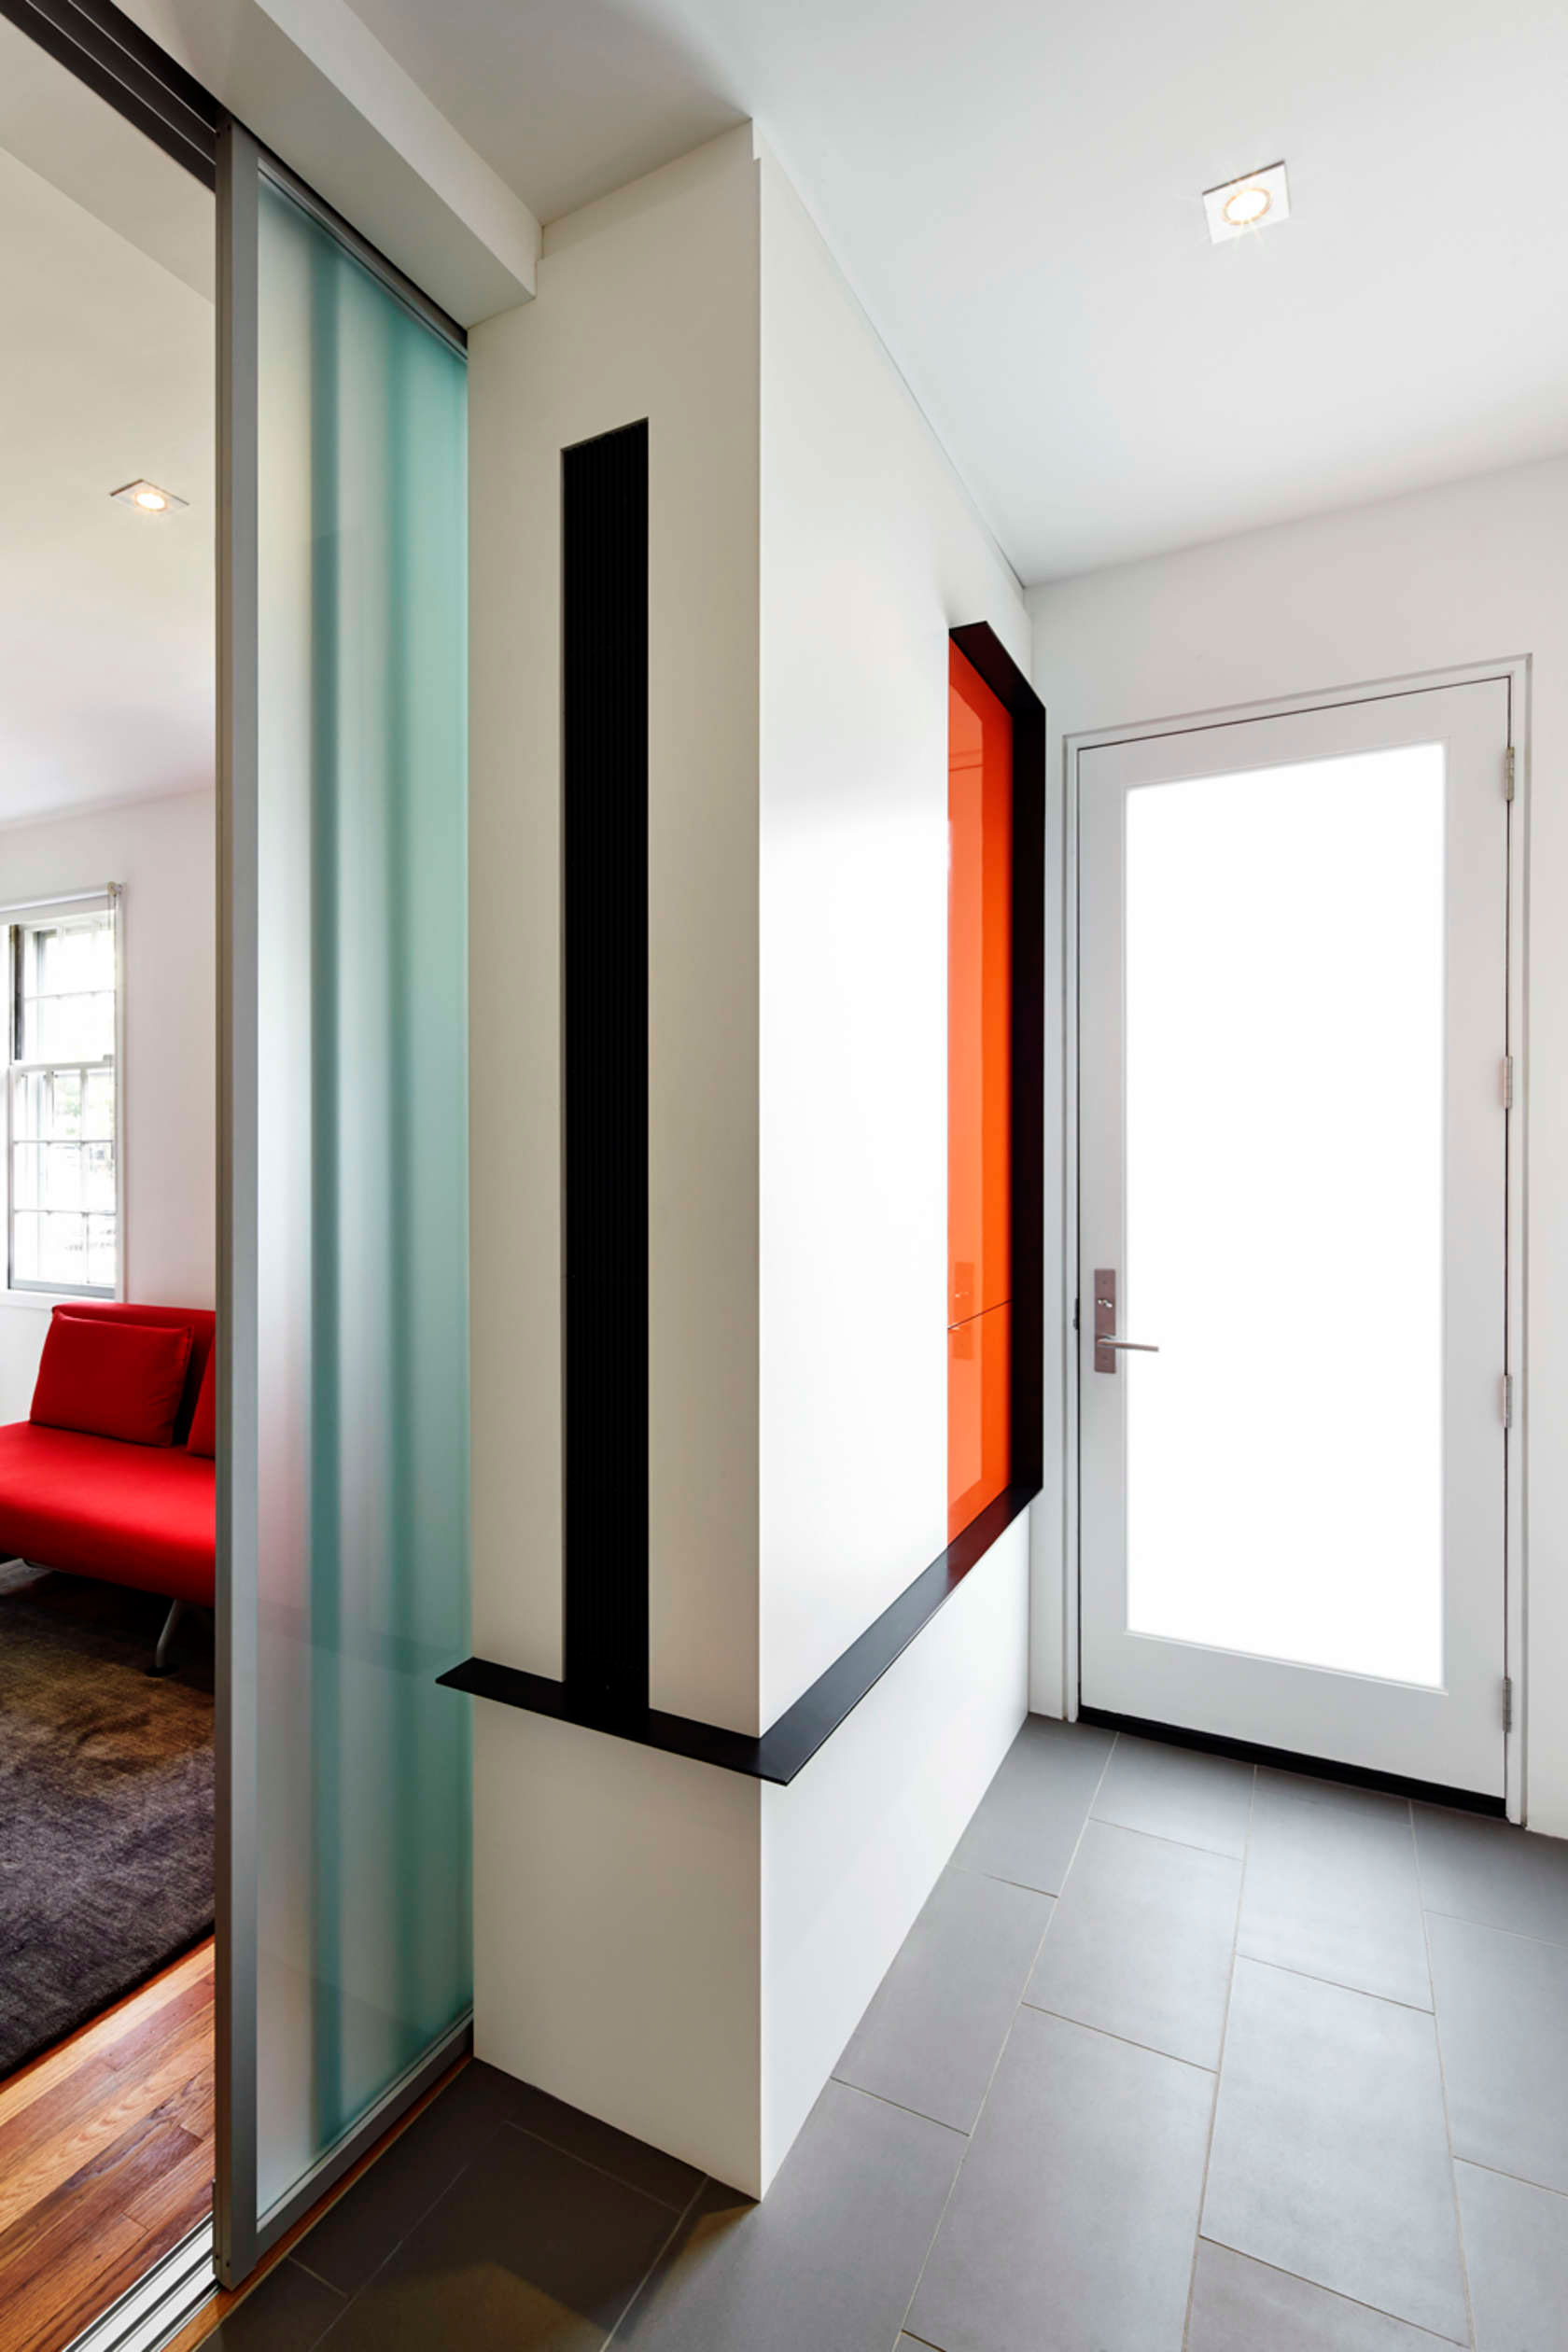 Salt and Pepper House in Washington, D.C. by KUBE Architecture-03